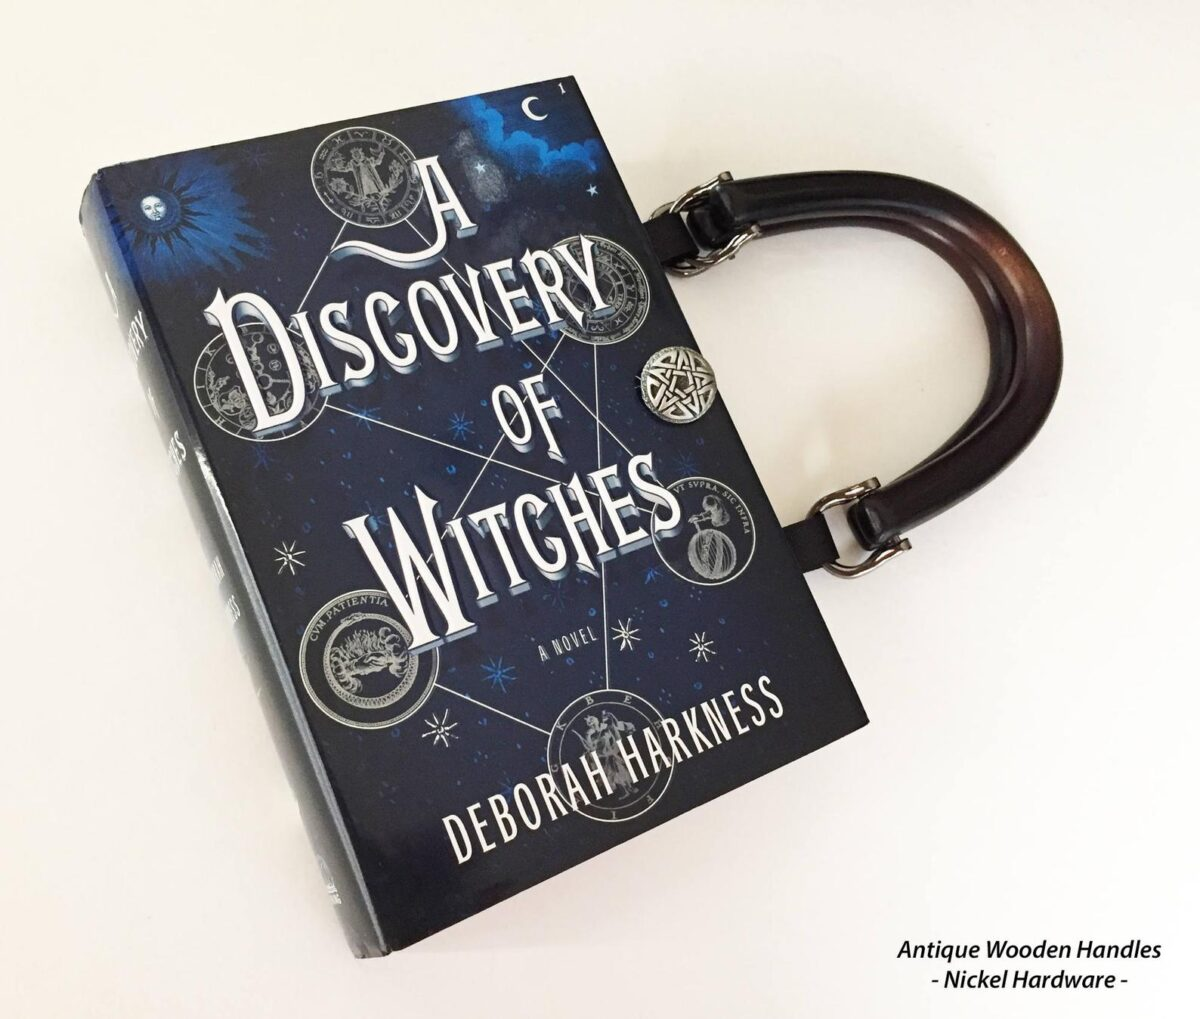 A Discovery of Witches Fan-Inspired Book Purse